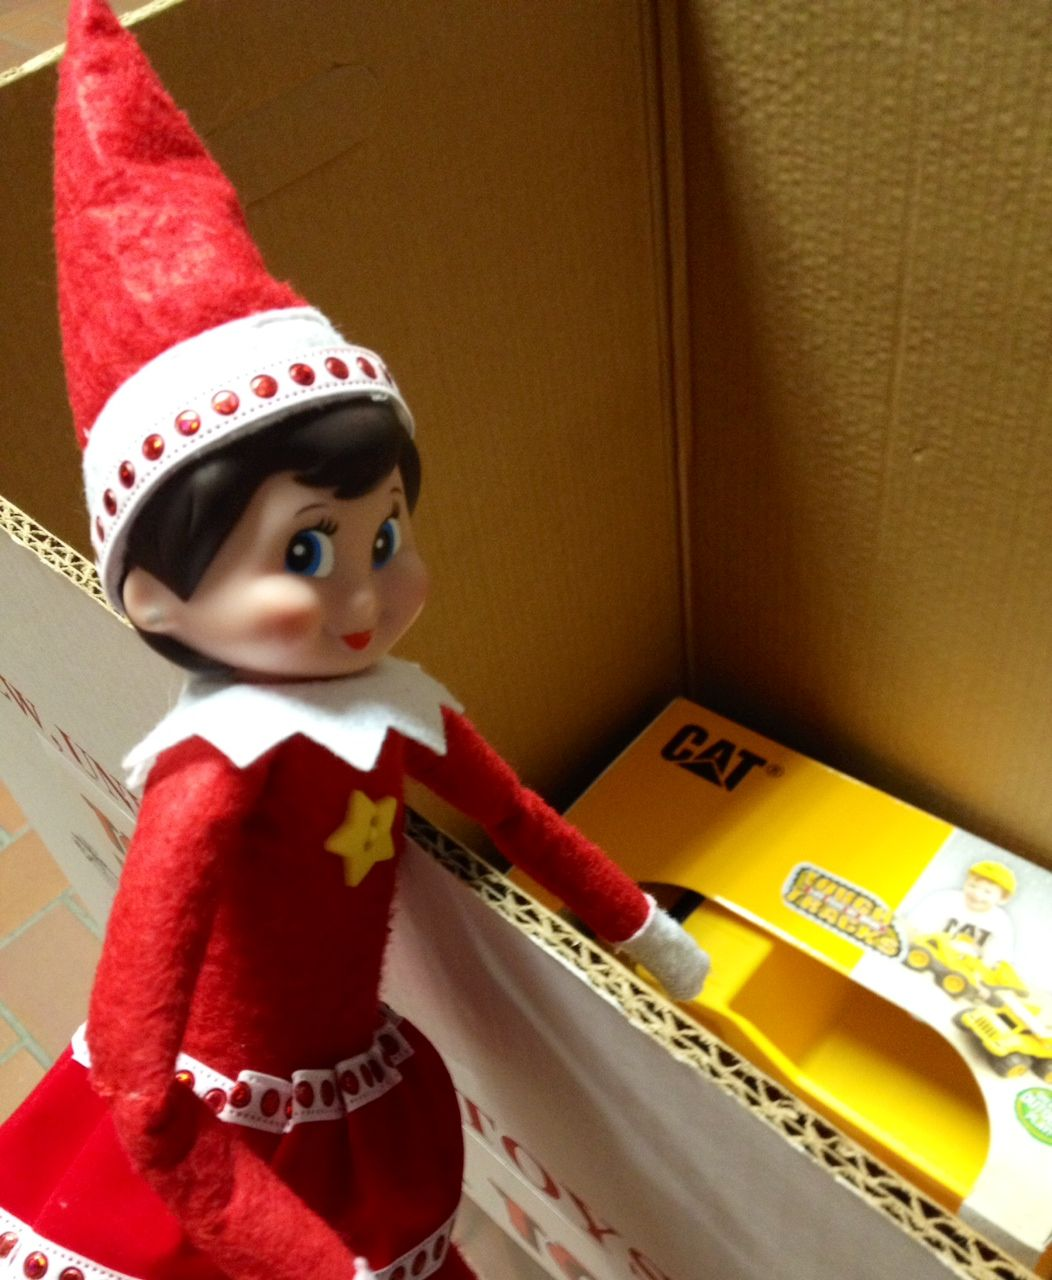 Toys for tots images  Presley will be here all month long to encourage donations for the